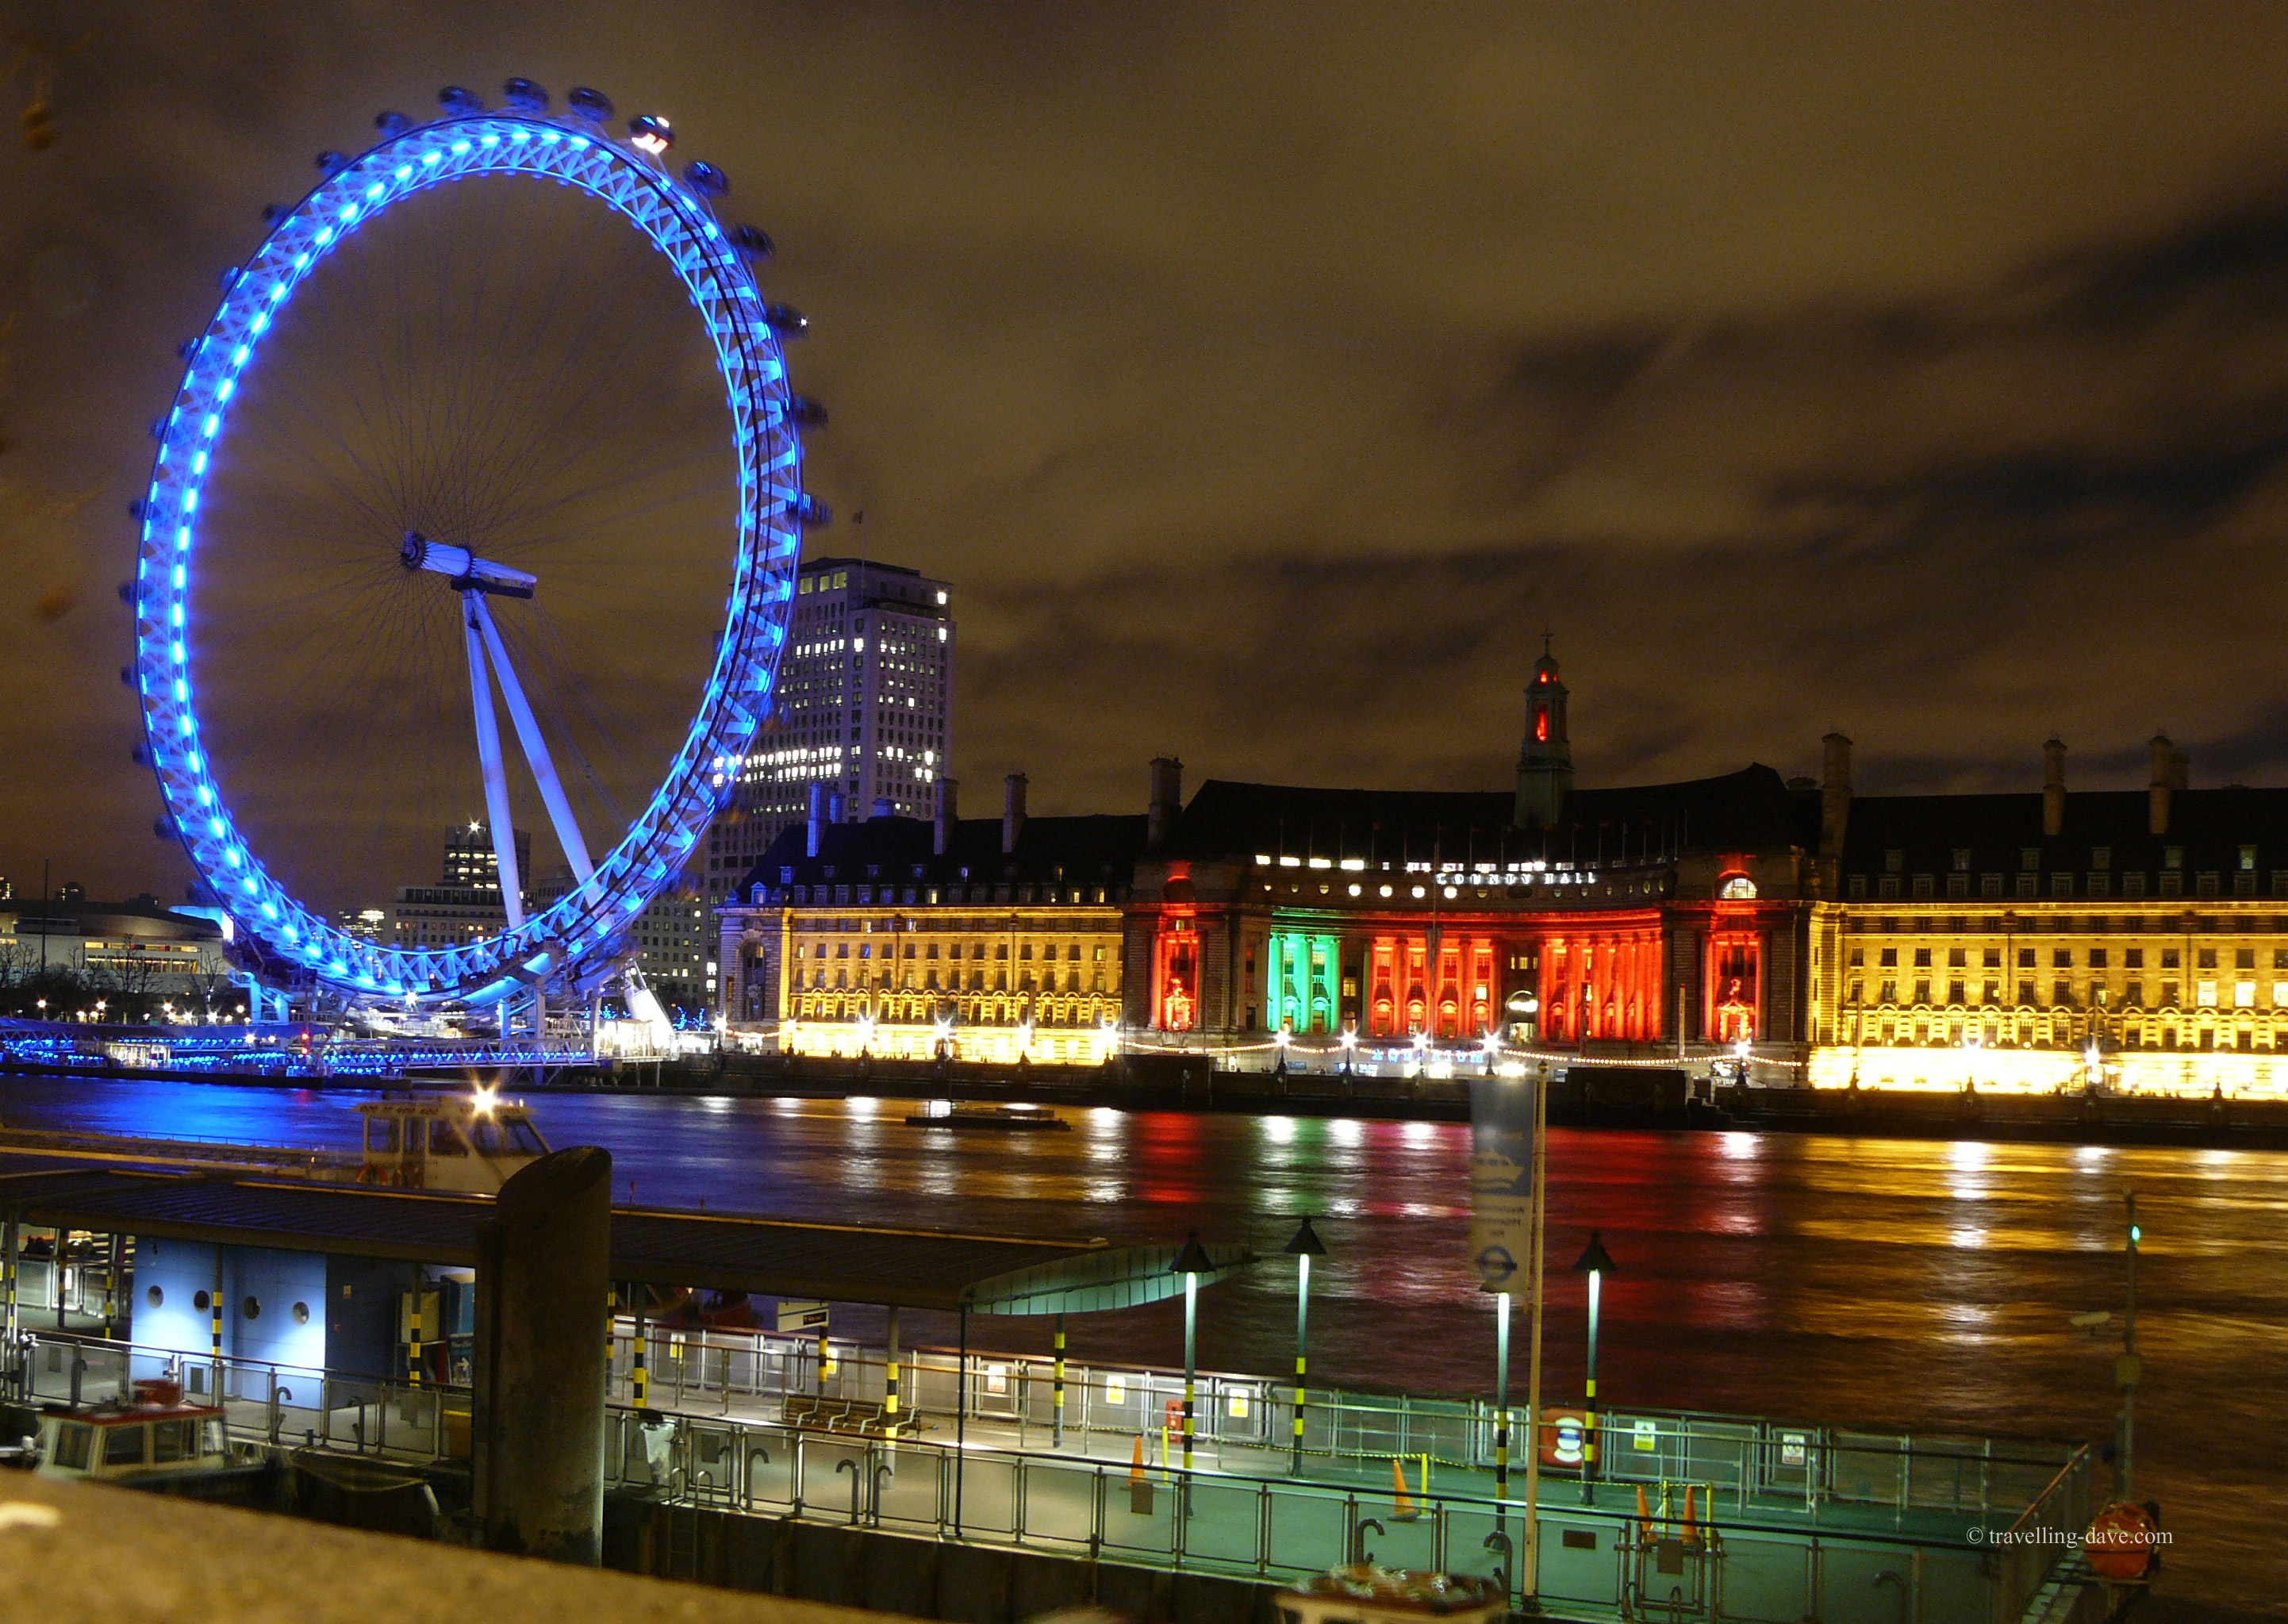 Evening on London's Southbank